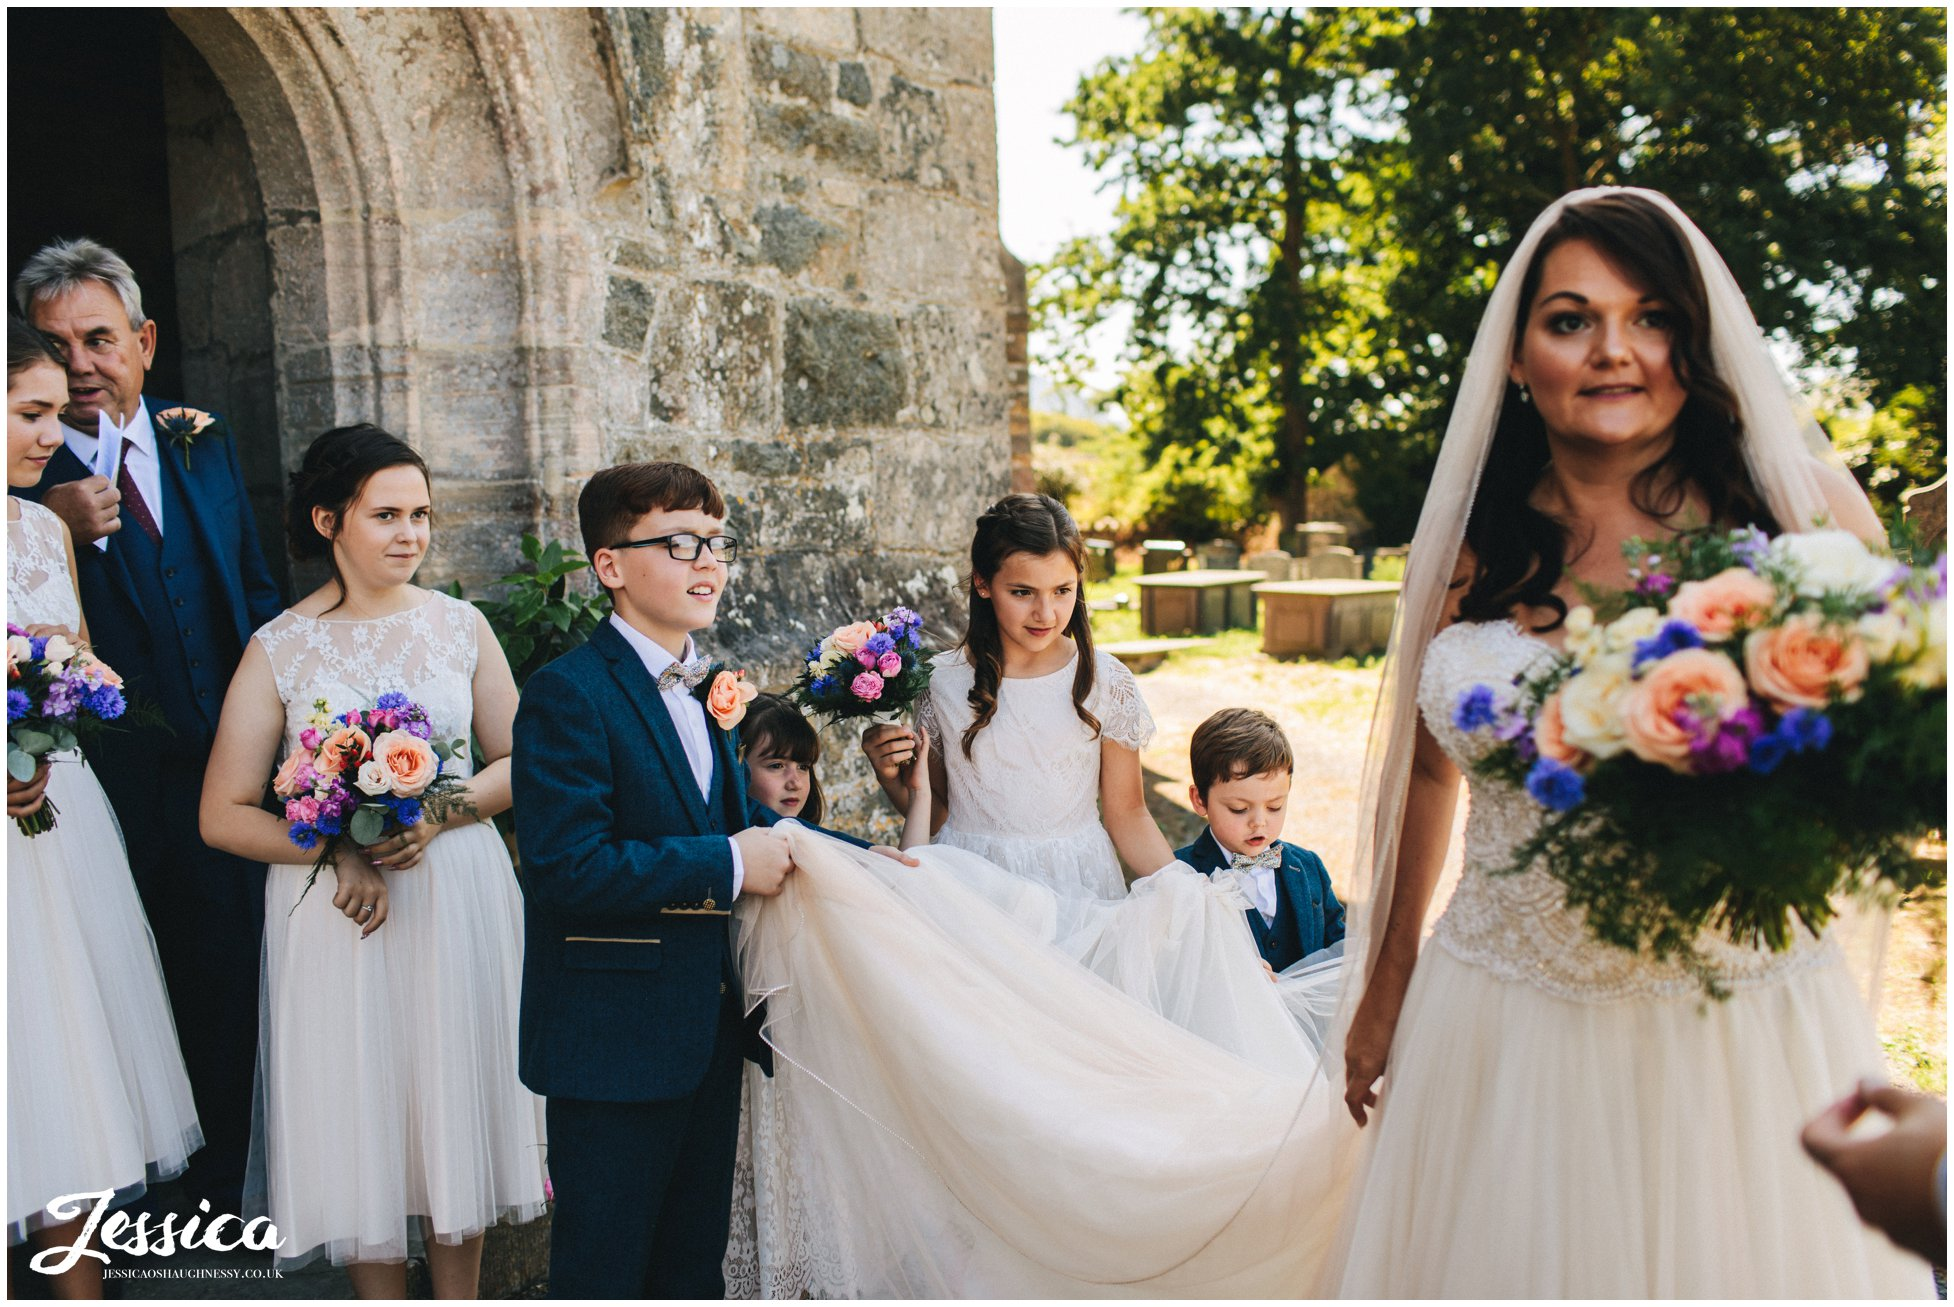 children help the bride by carrying her train